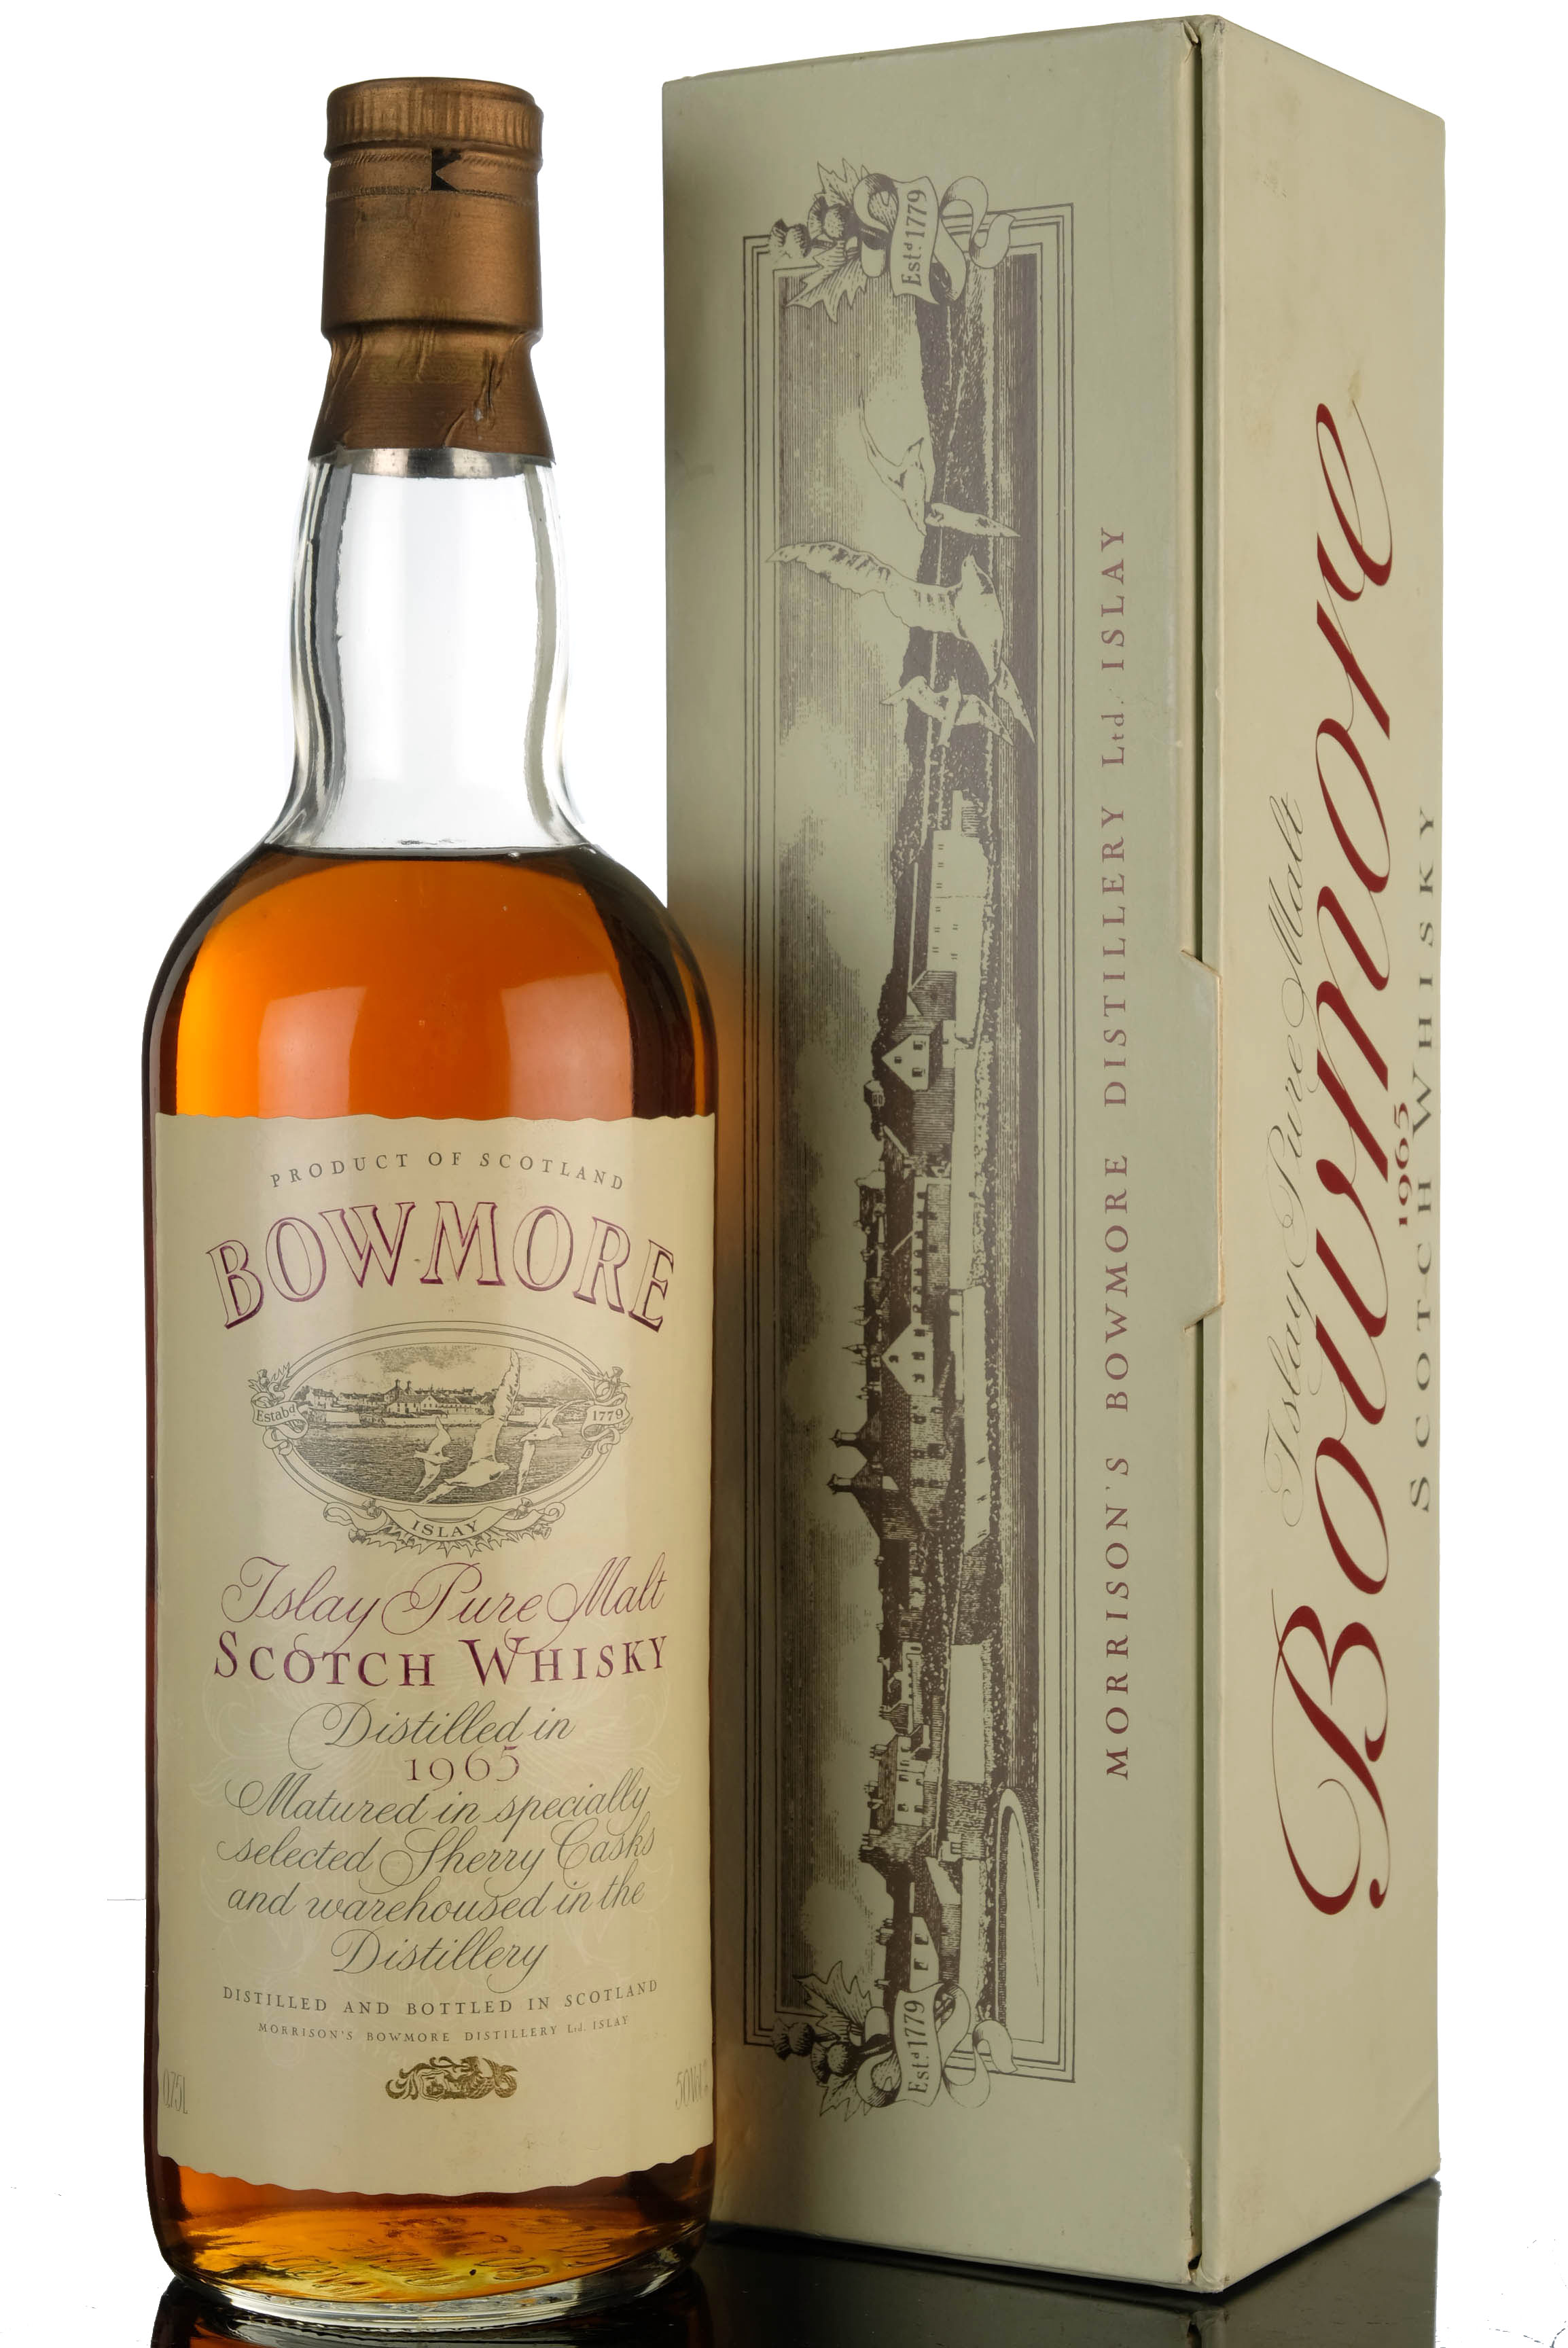 bowmore 1965 - sherry cask - vintage label